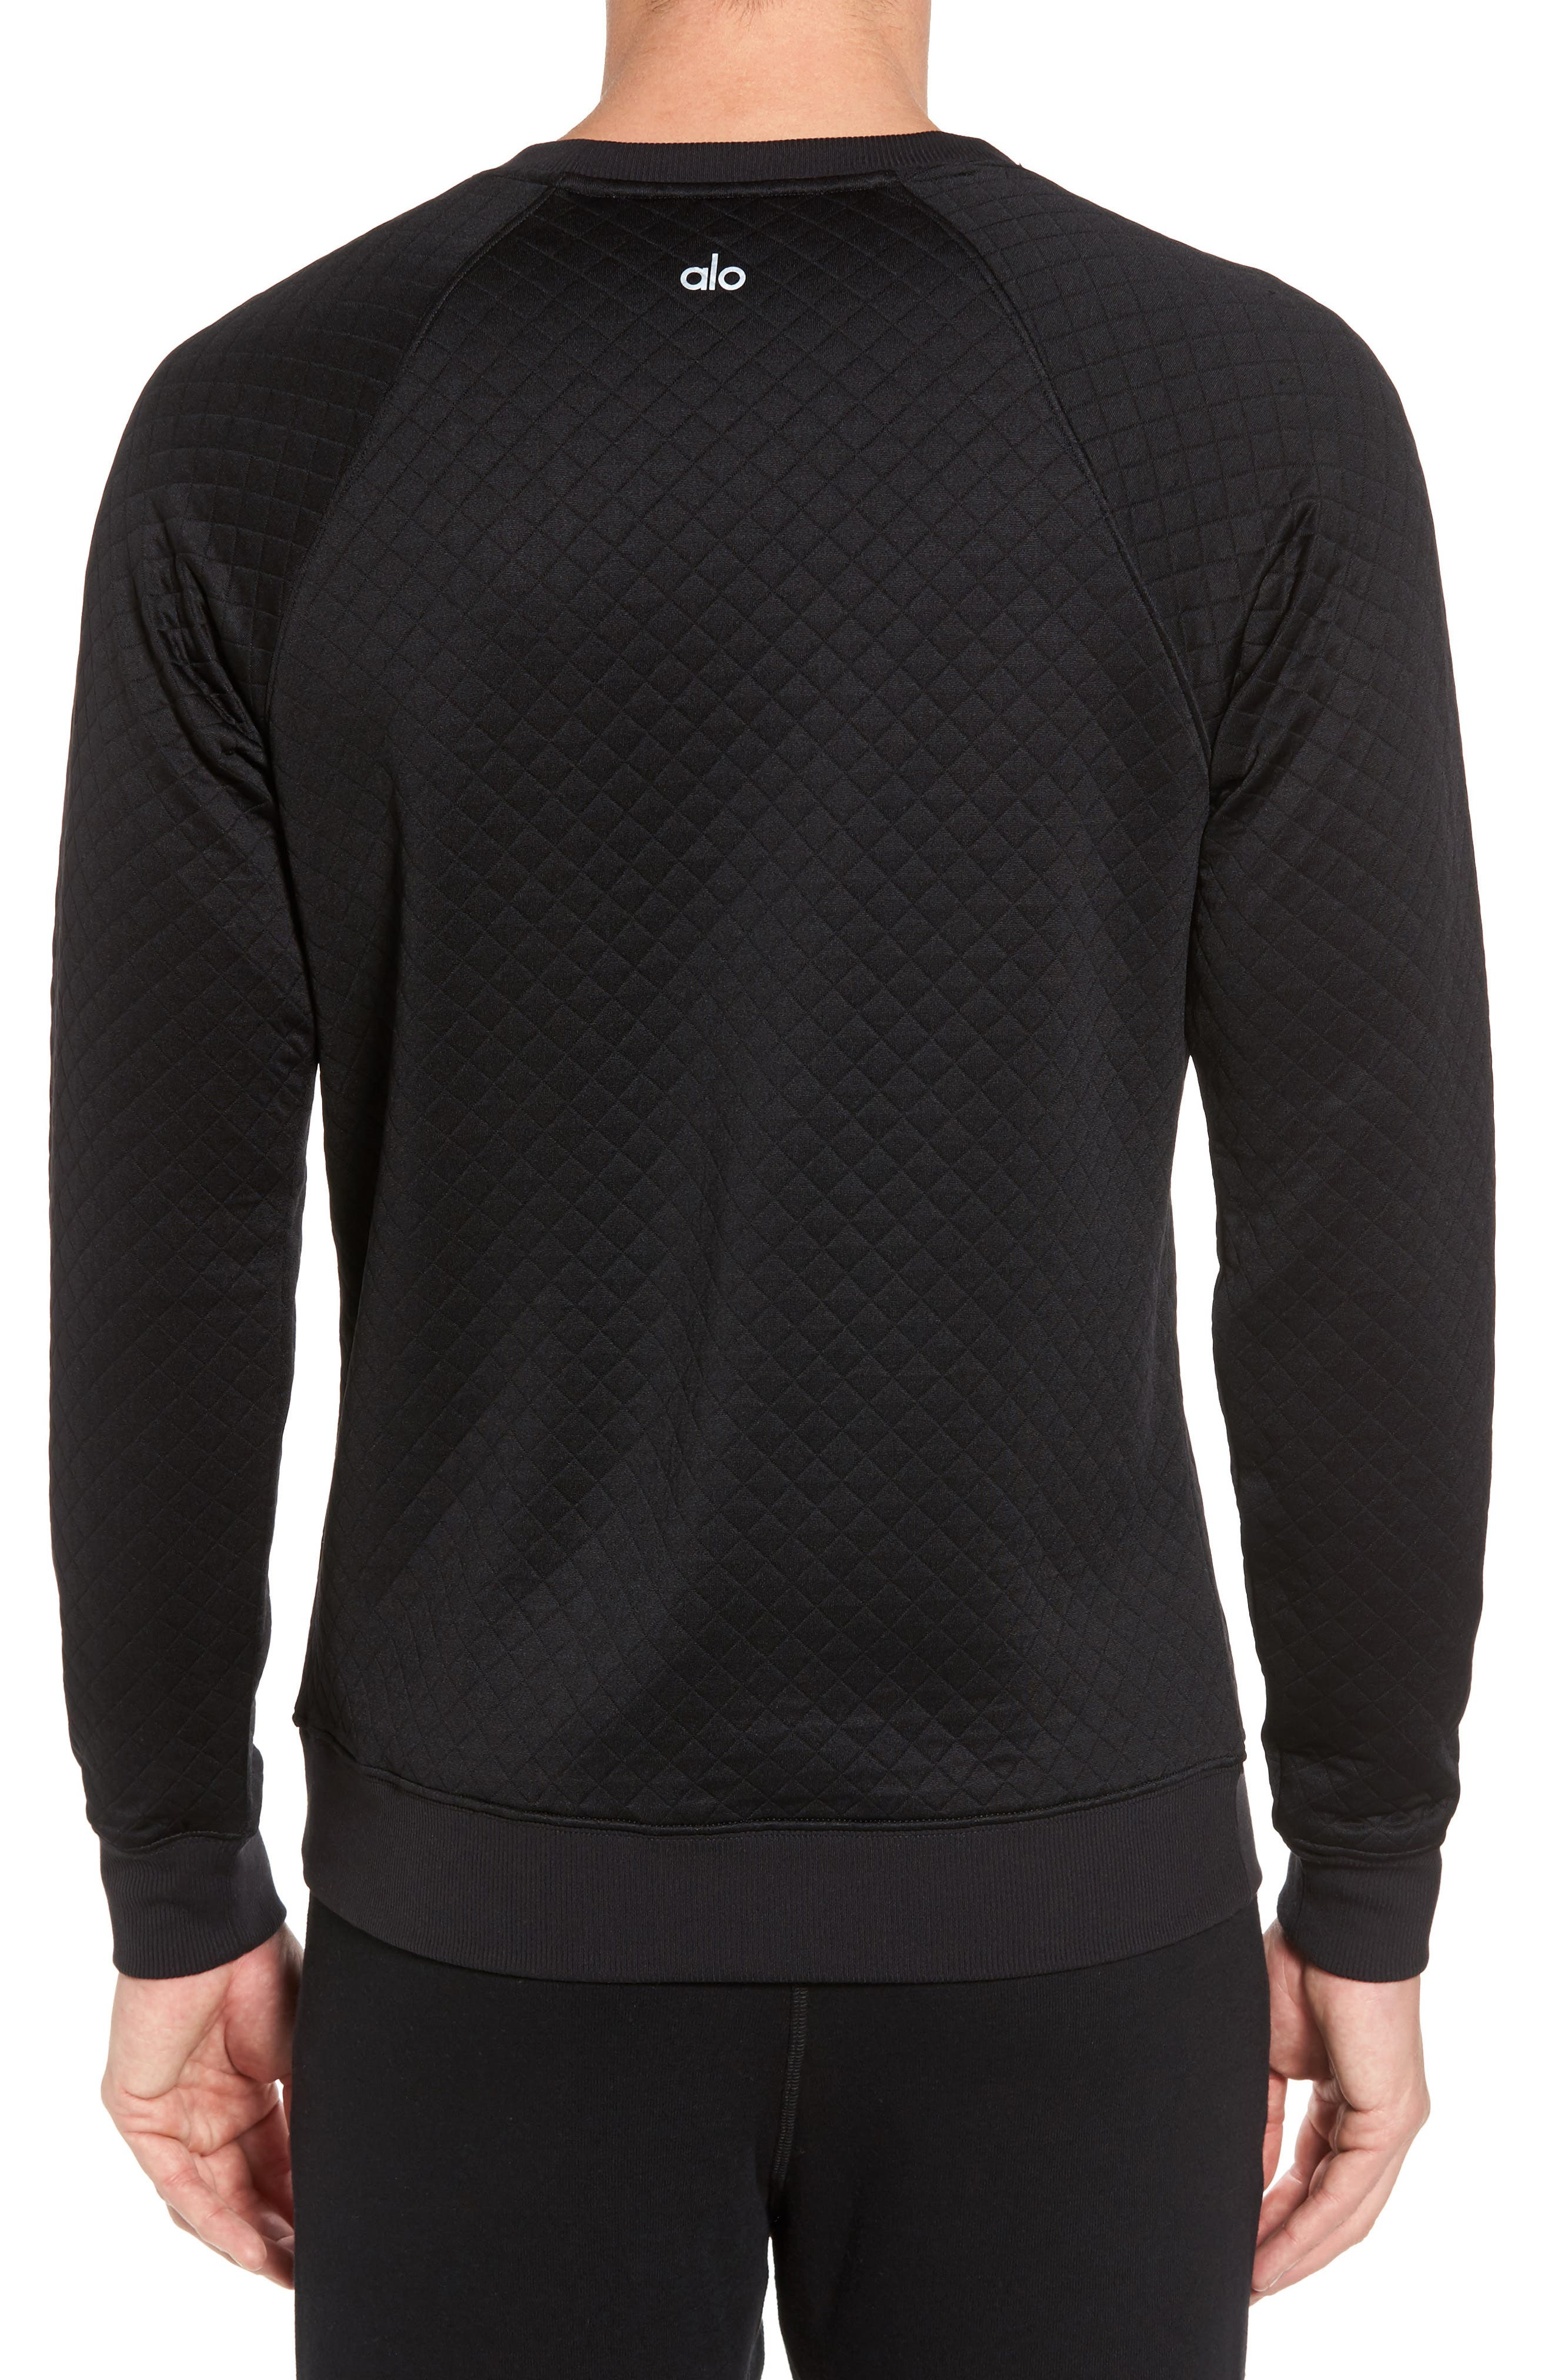 Yama Relaxed Slim Fit Quilted Sweatshirt,                             Alternate thumbnail 2, color,                             Black